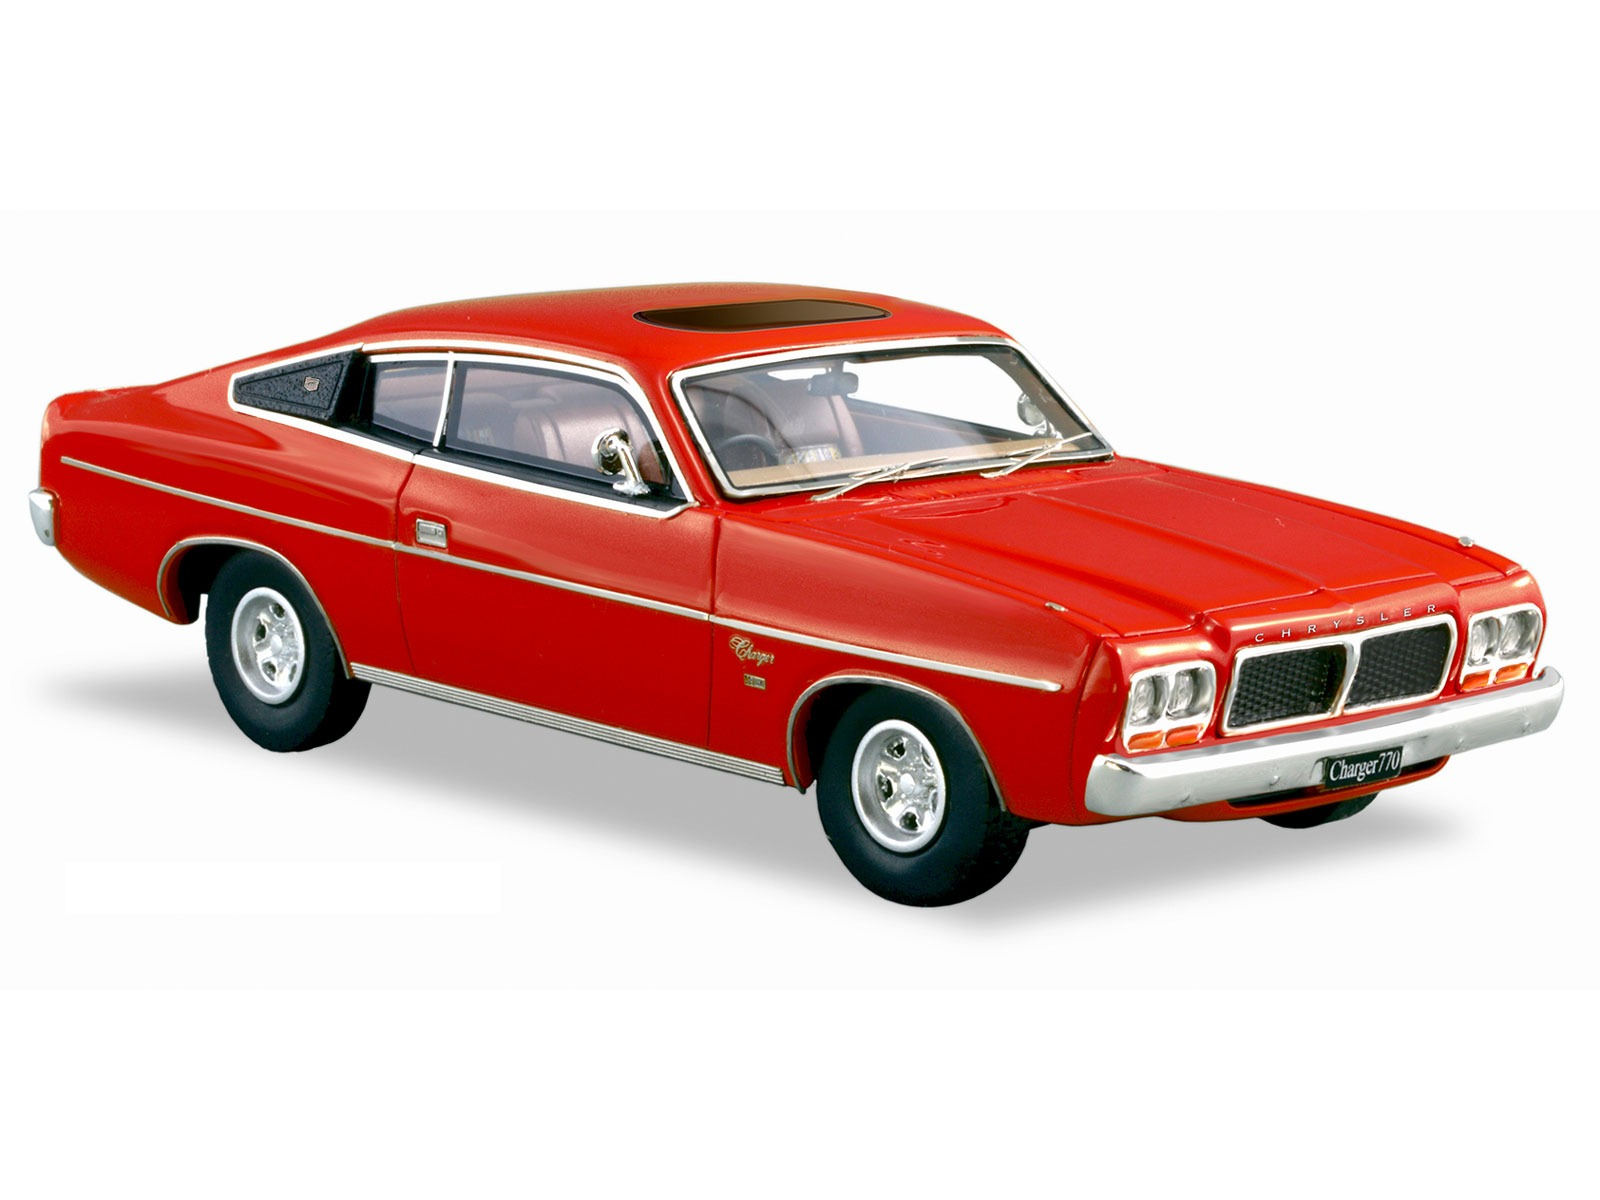 1976 CL Valiant Charger 770 – Red